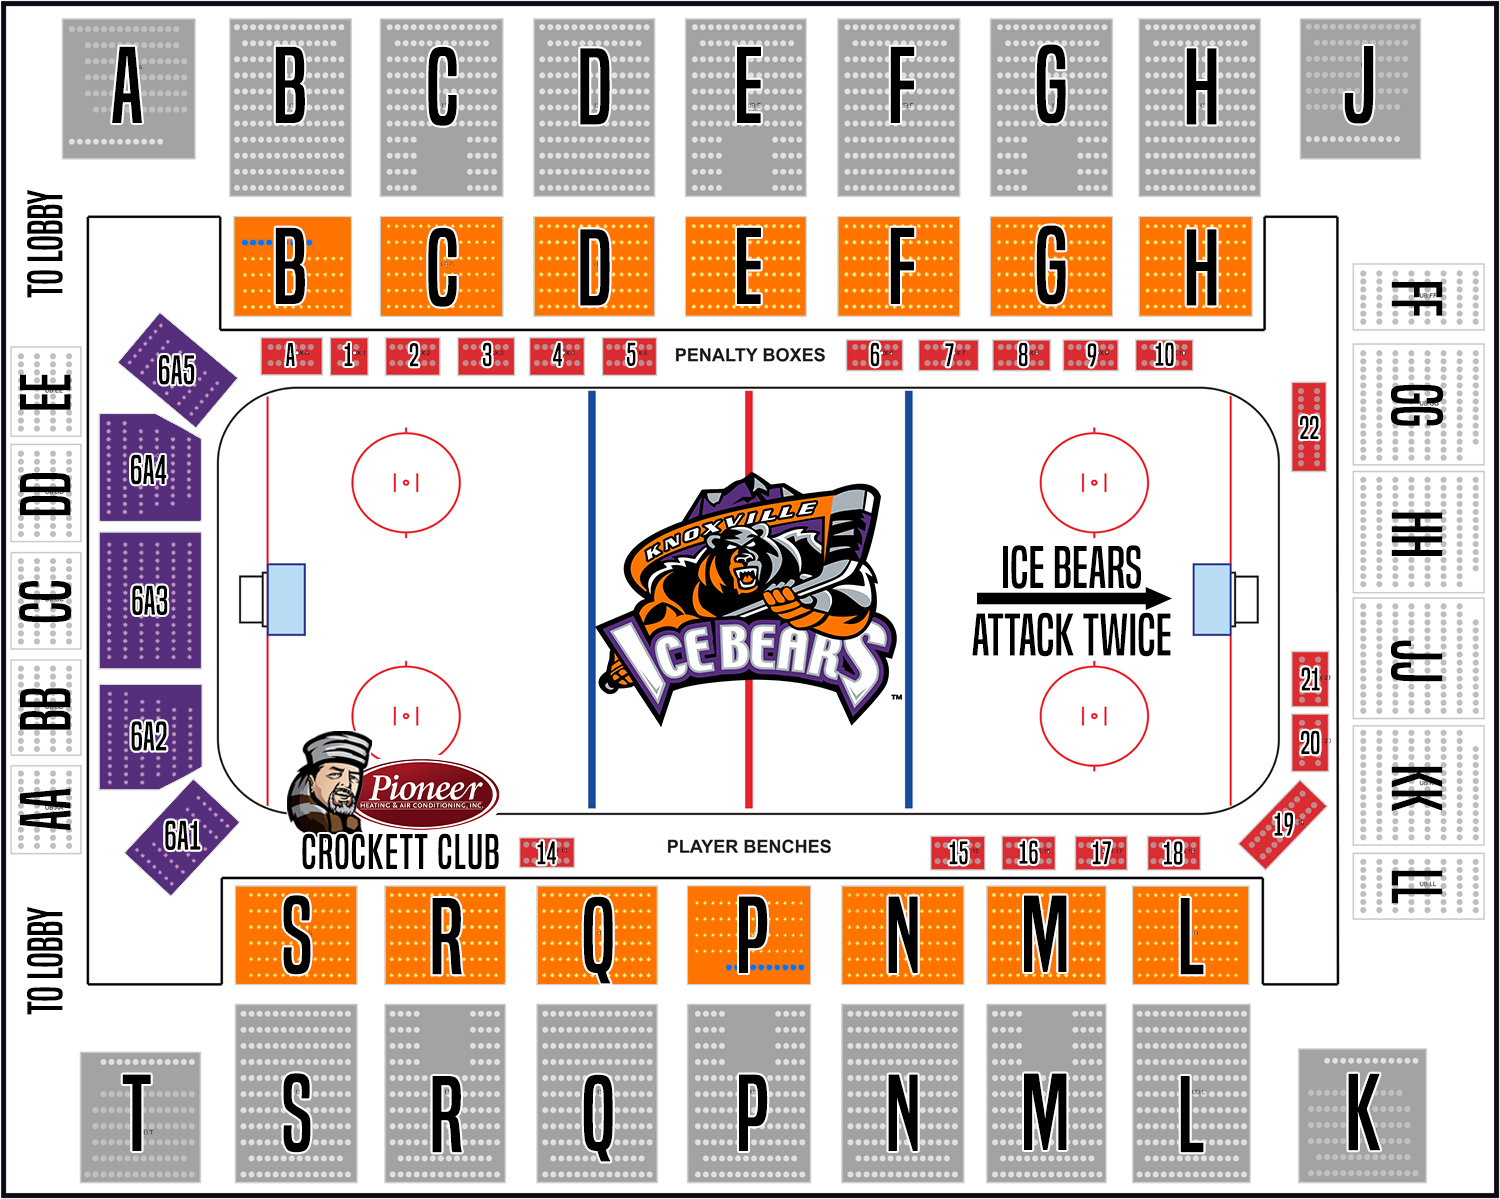 Knoxville Ice Bears Seating Chart